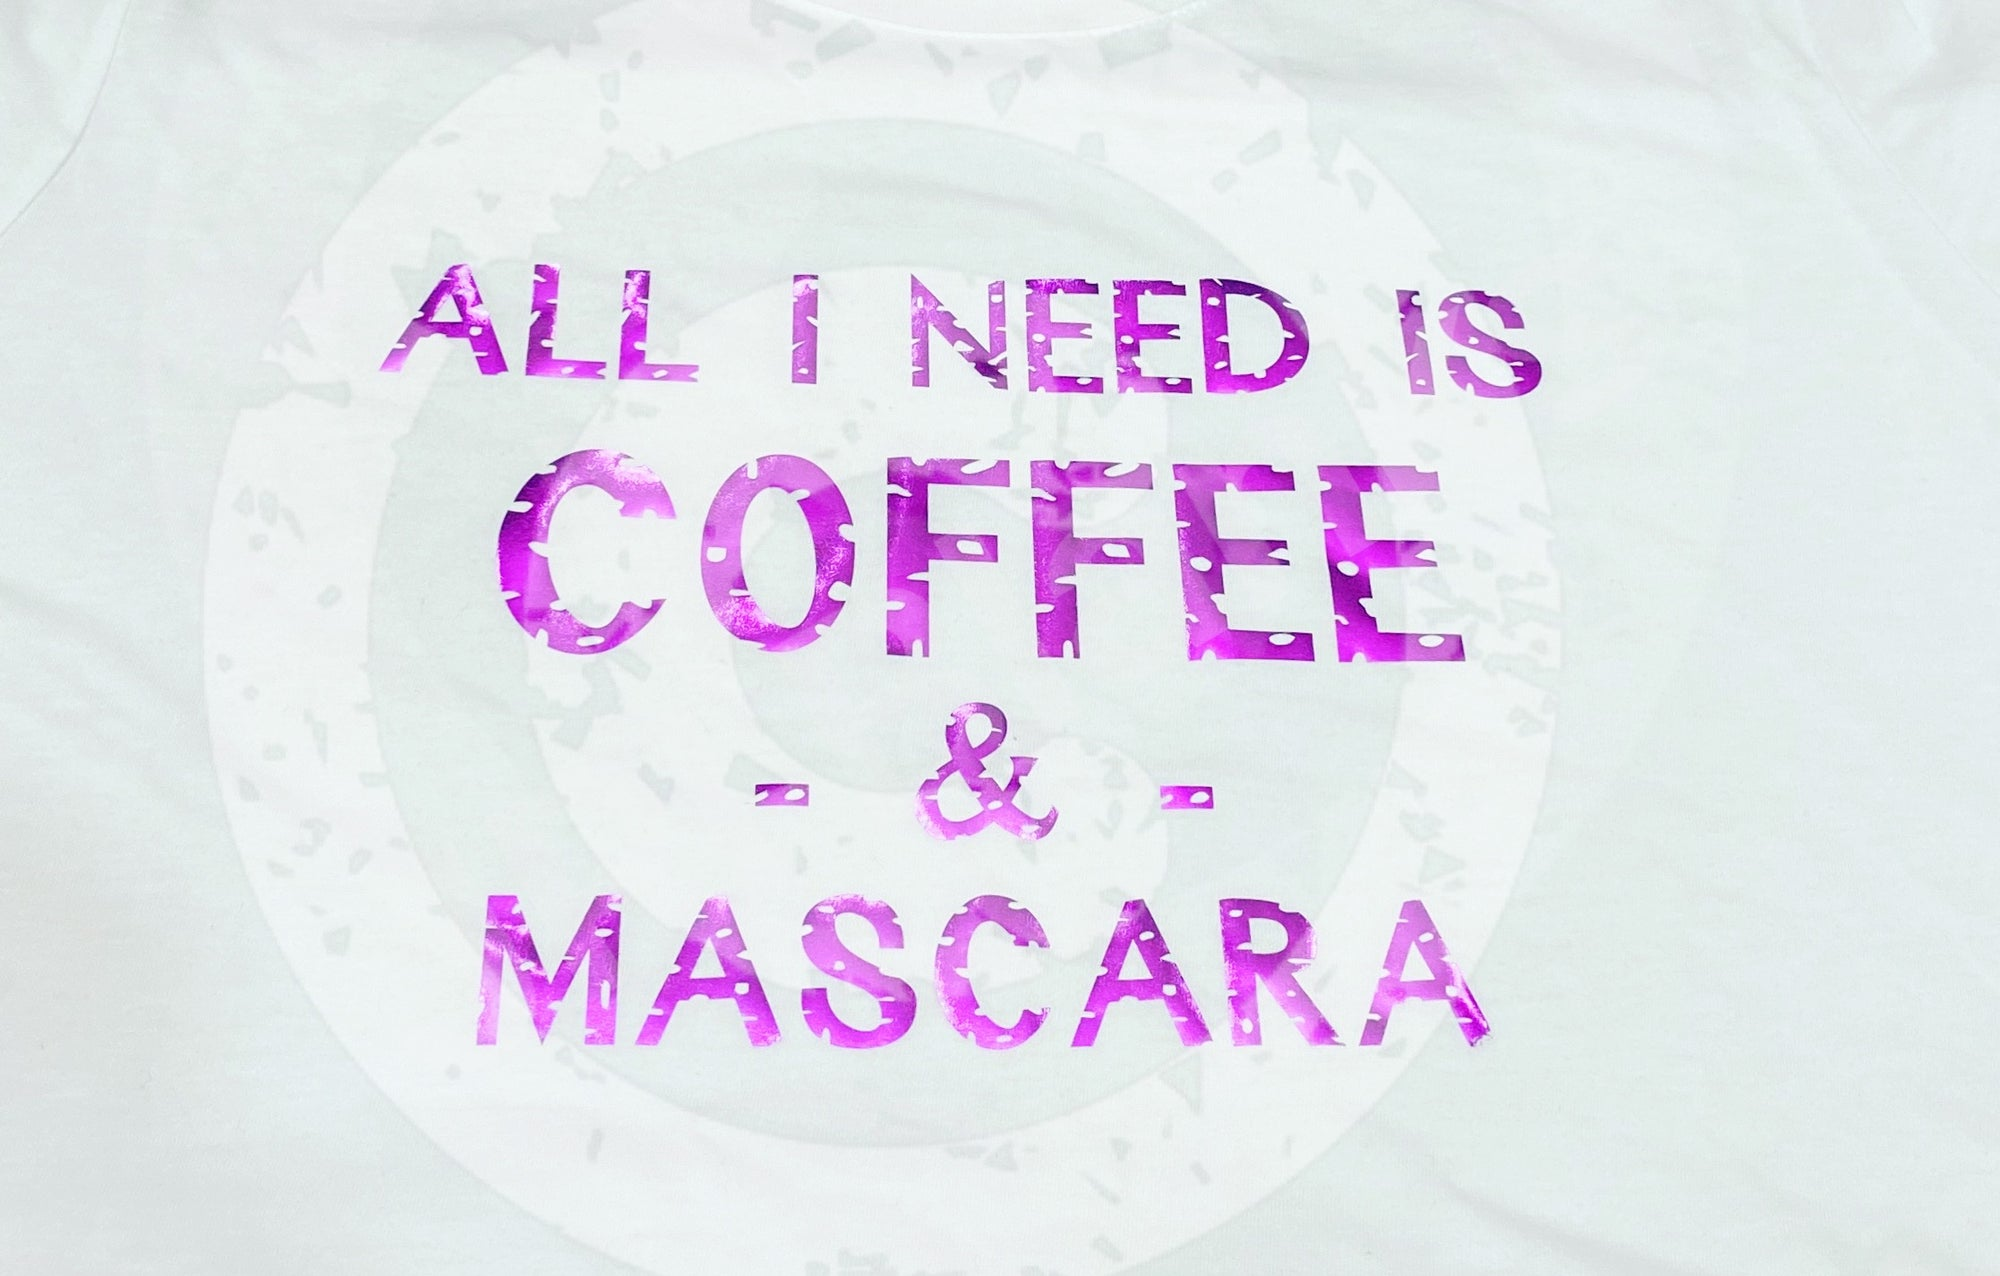 SVG ALL I NEED IS COFFEE & MASCARA (DISTRESSED) SVG FILE - JPIBlanks.com